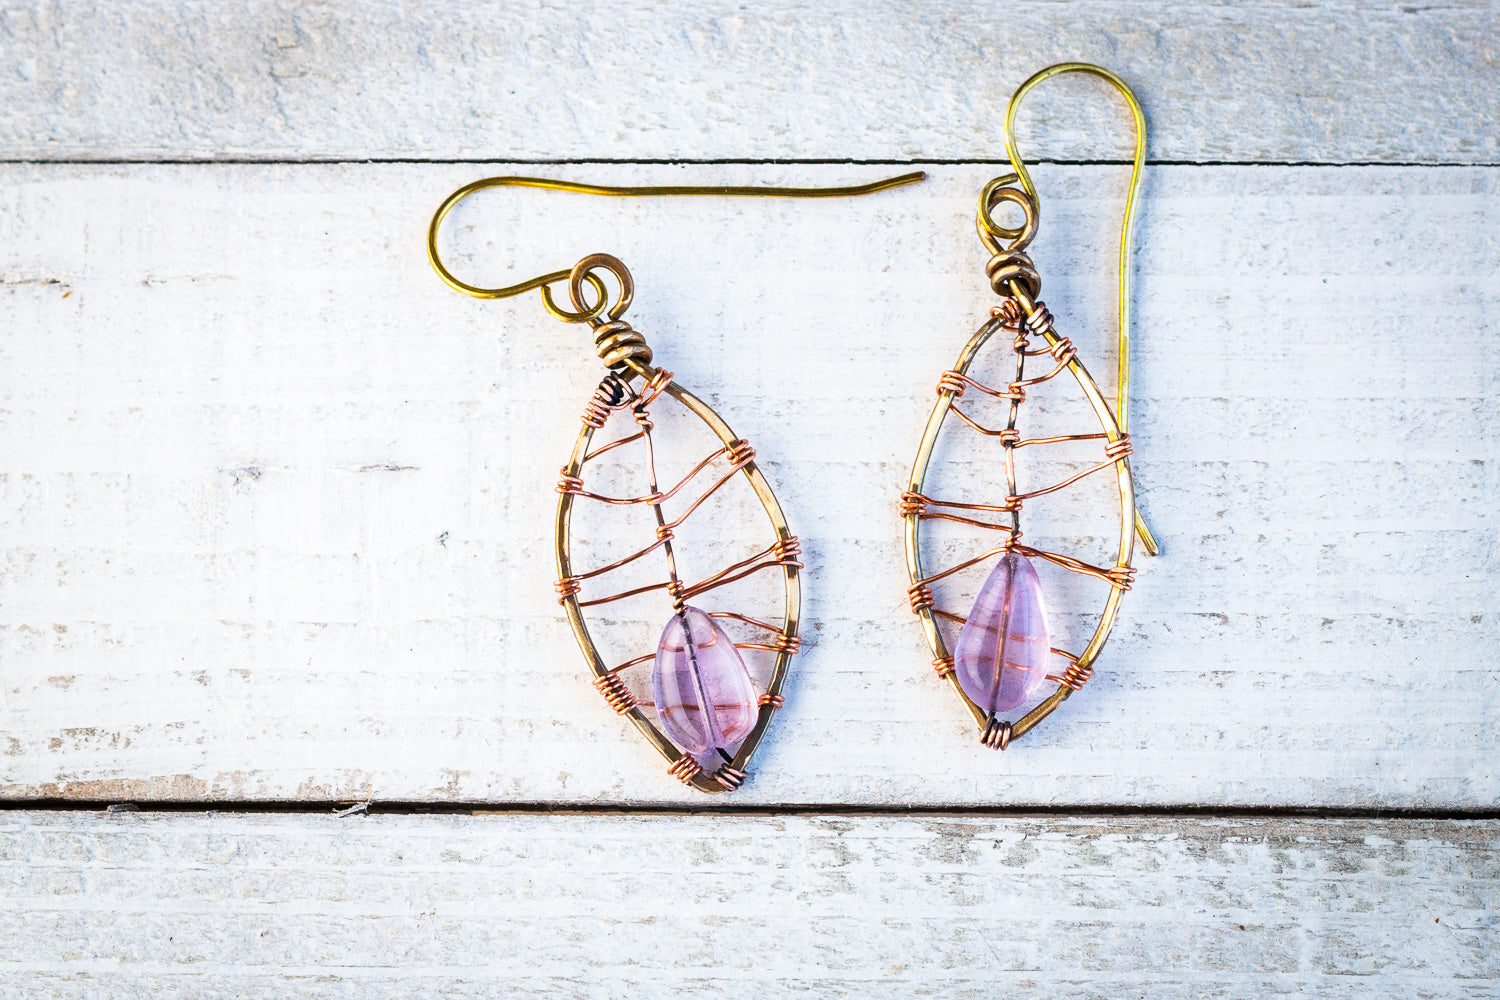 Amethyst Leaf Earrings | Handcrafted with antiqued copper and brass - Emz Blendz